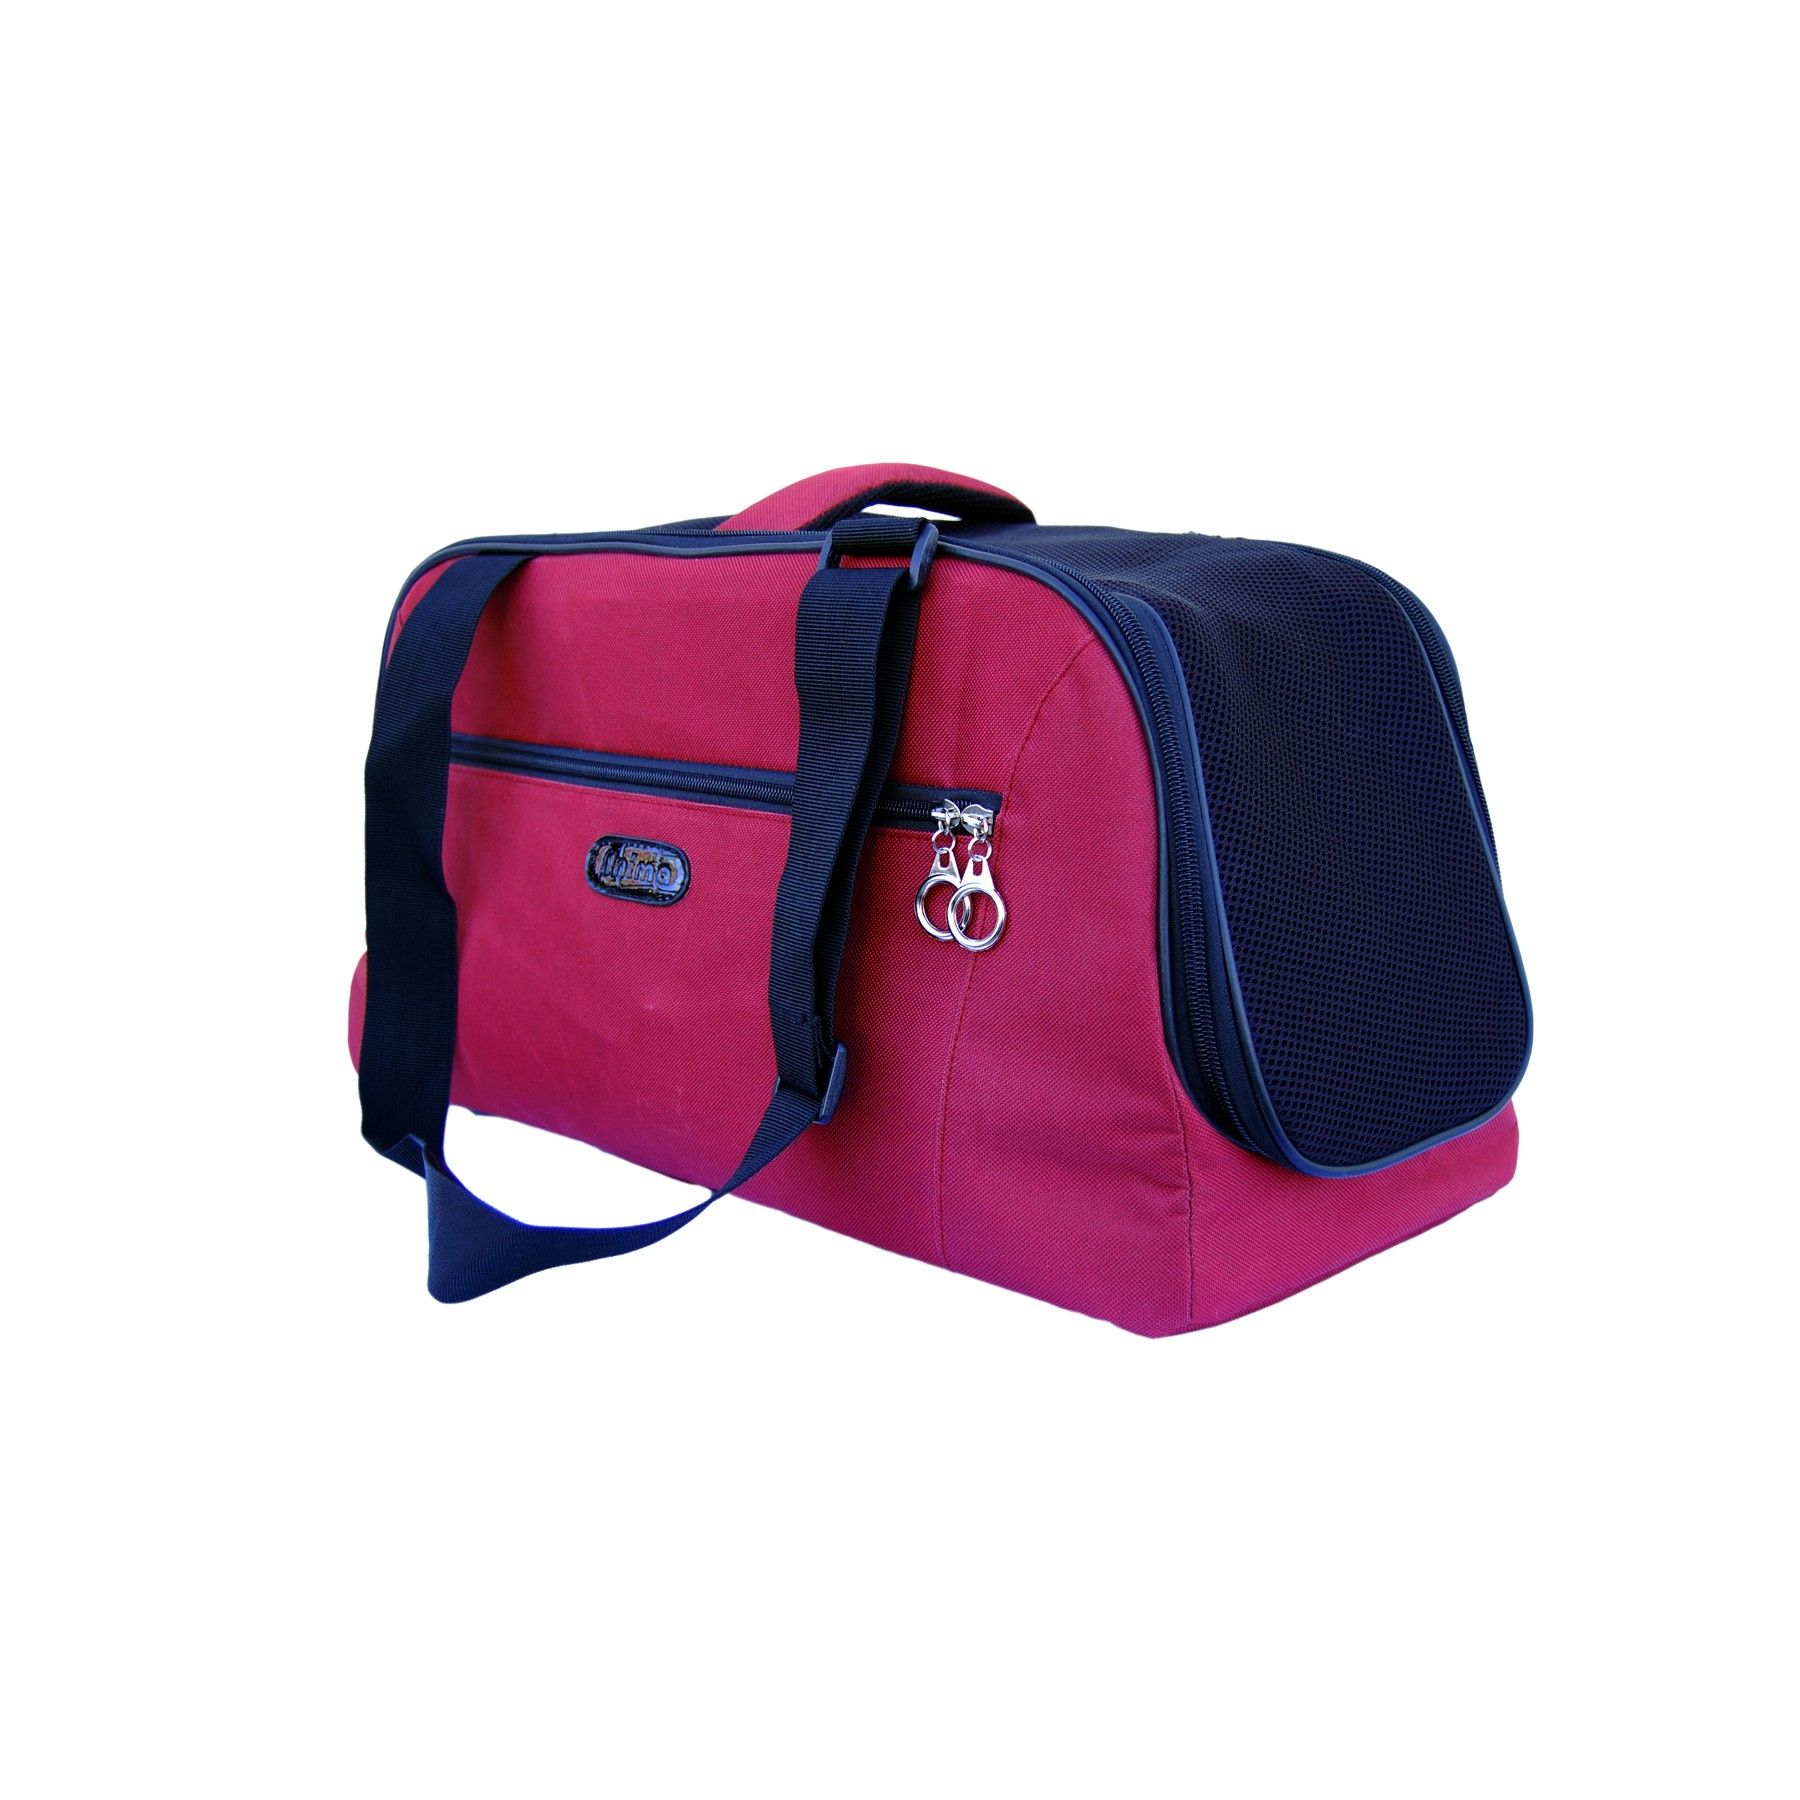 Burgundy dog shoulder travel bag